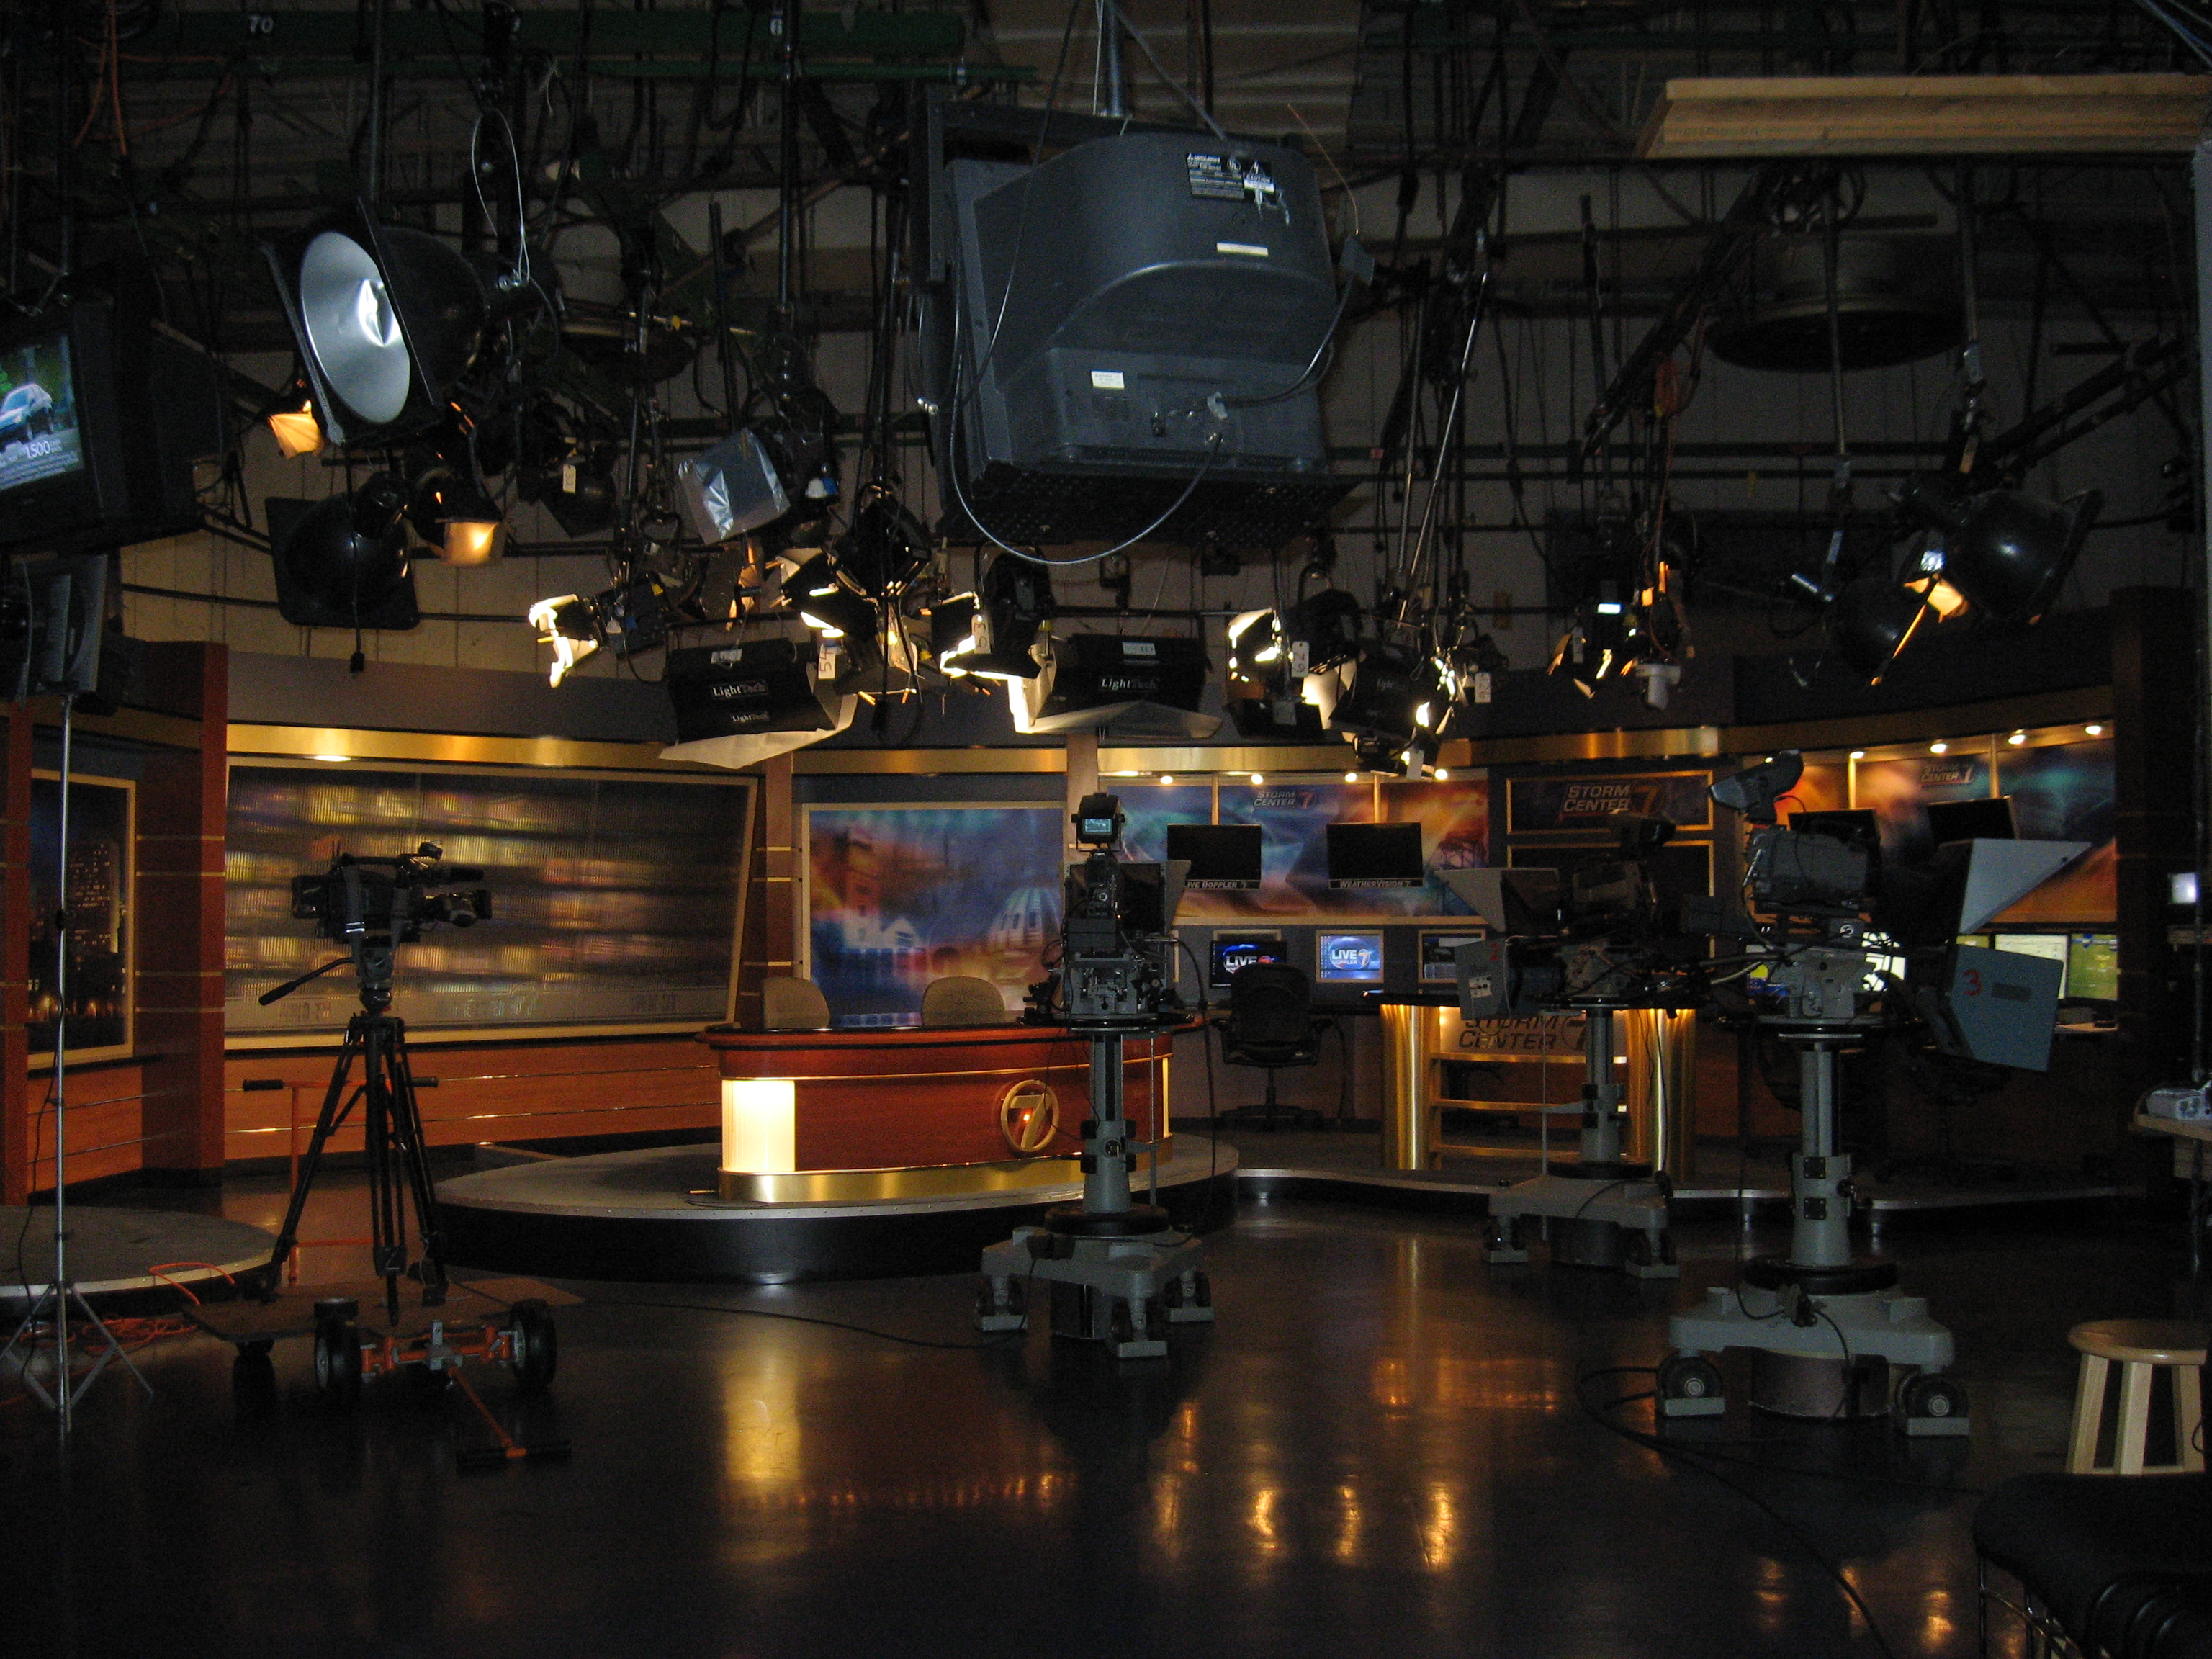 File:WHIO-TV News Set Kettering OH USA.JPG